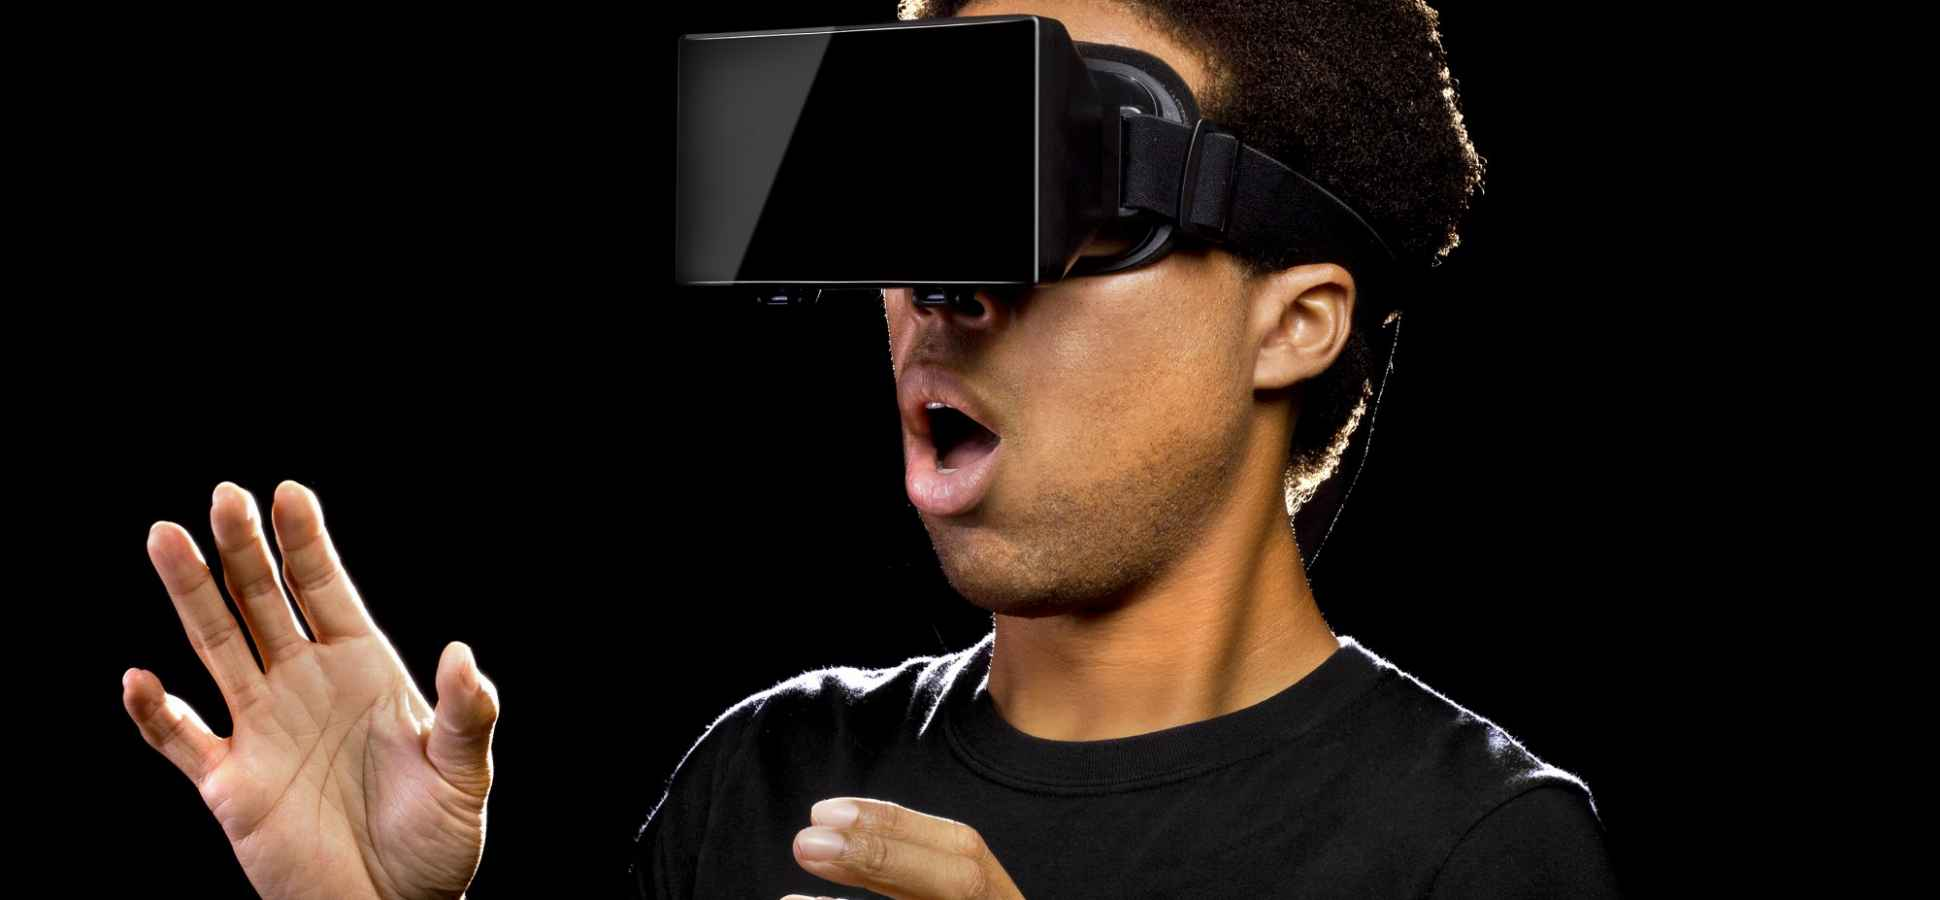 This Virtual Reality Video Platform Could Be the Next Billion-Dollar Company. Here's Why